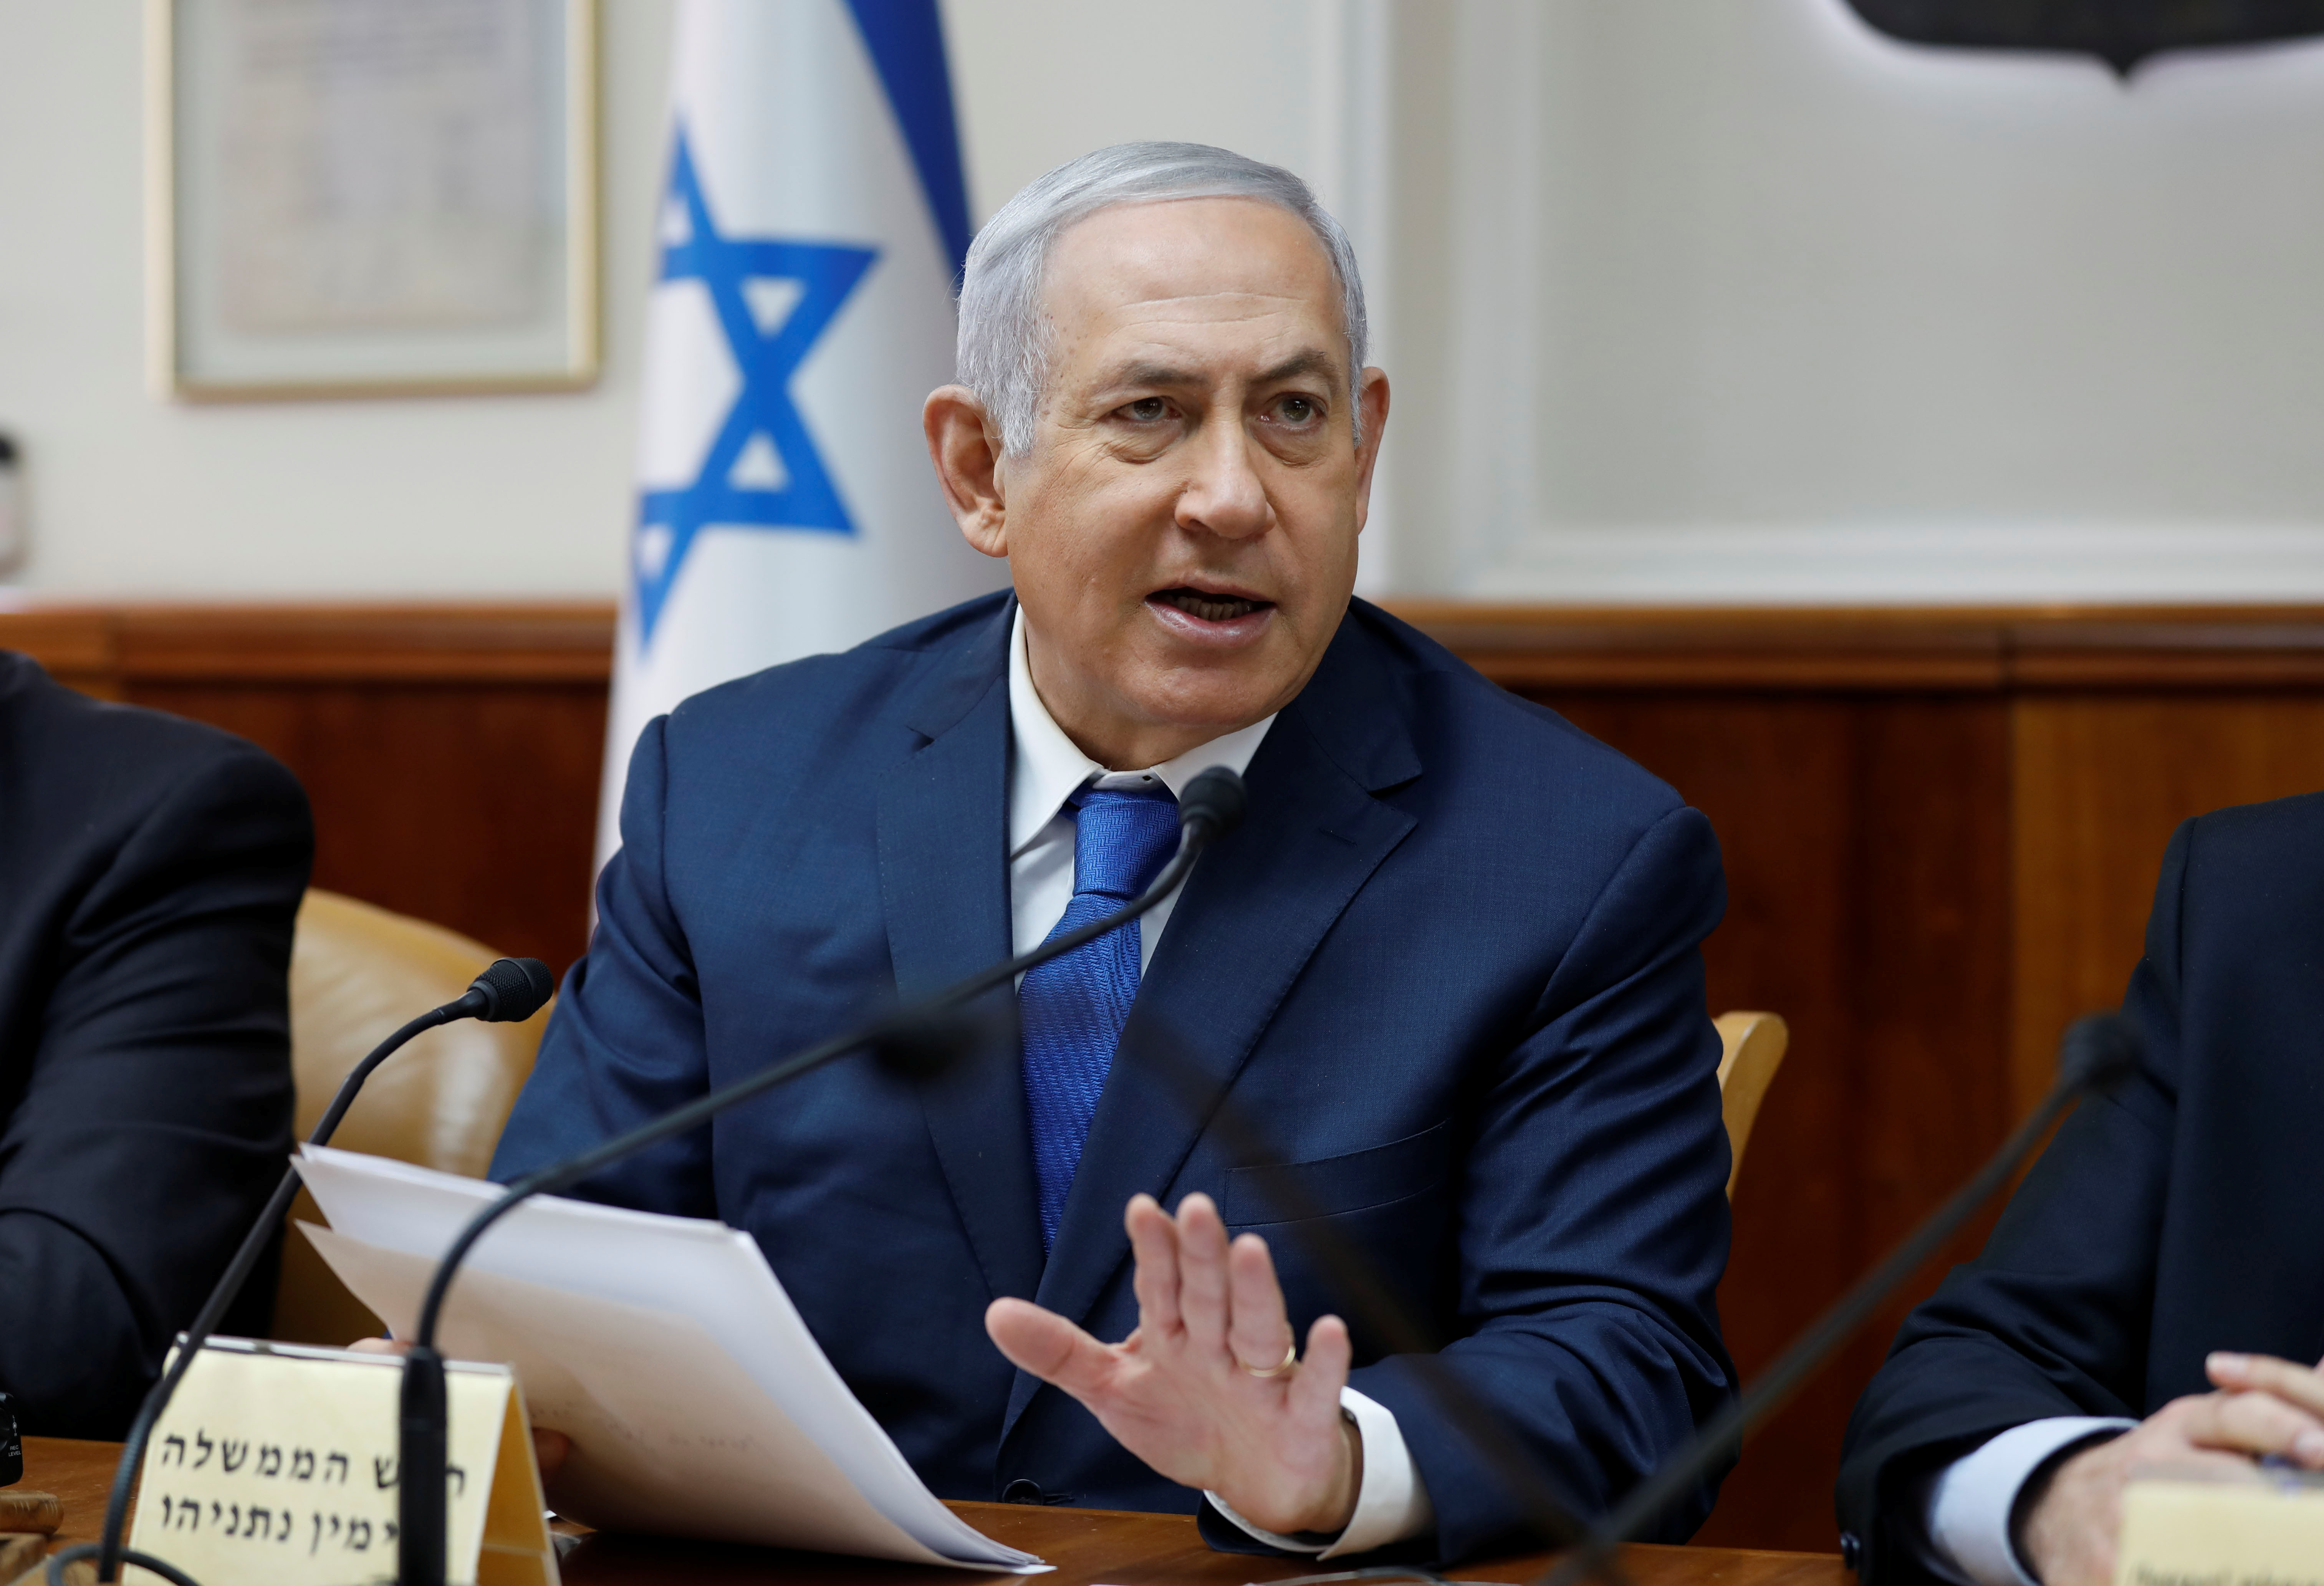 Israeli Prime Minister Benjamin Netanyahu attends the weekly cabinet meeting at his office in Jerusalem December 16, 2018. Abir Sultan/Pool via REUTERS/File Photo